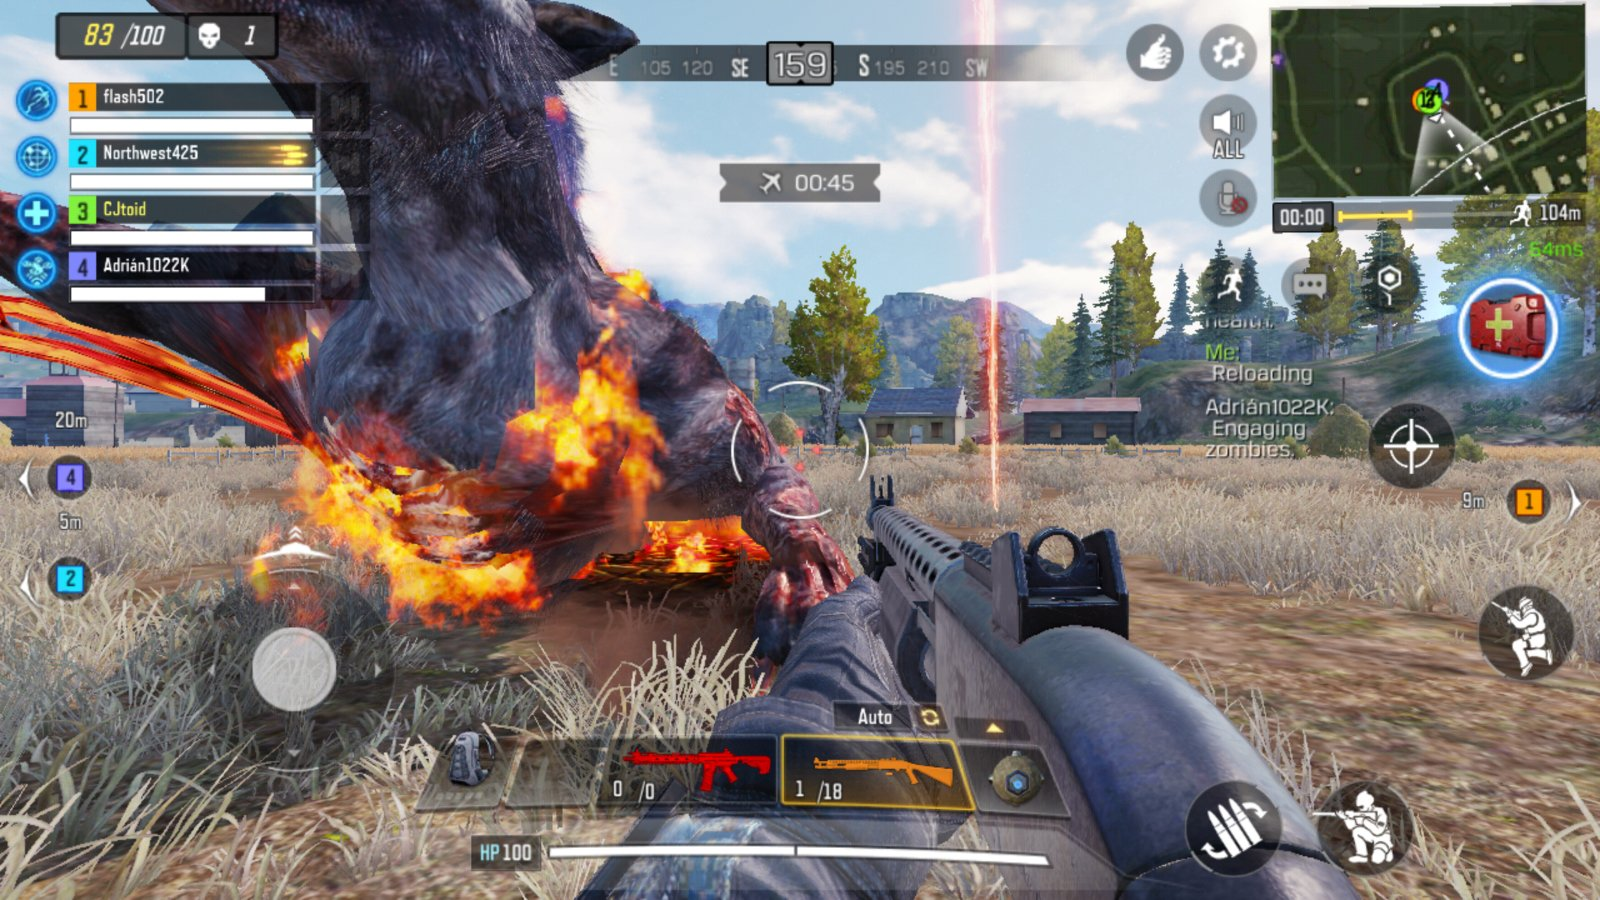 Call of Duty: Mobile breaks download record with staggering player count